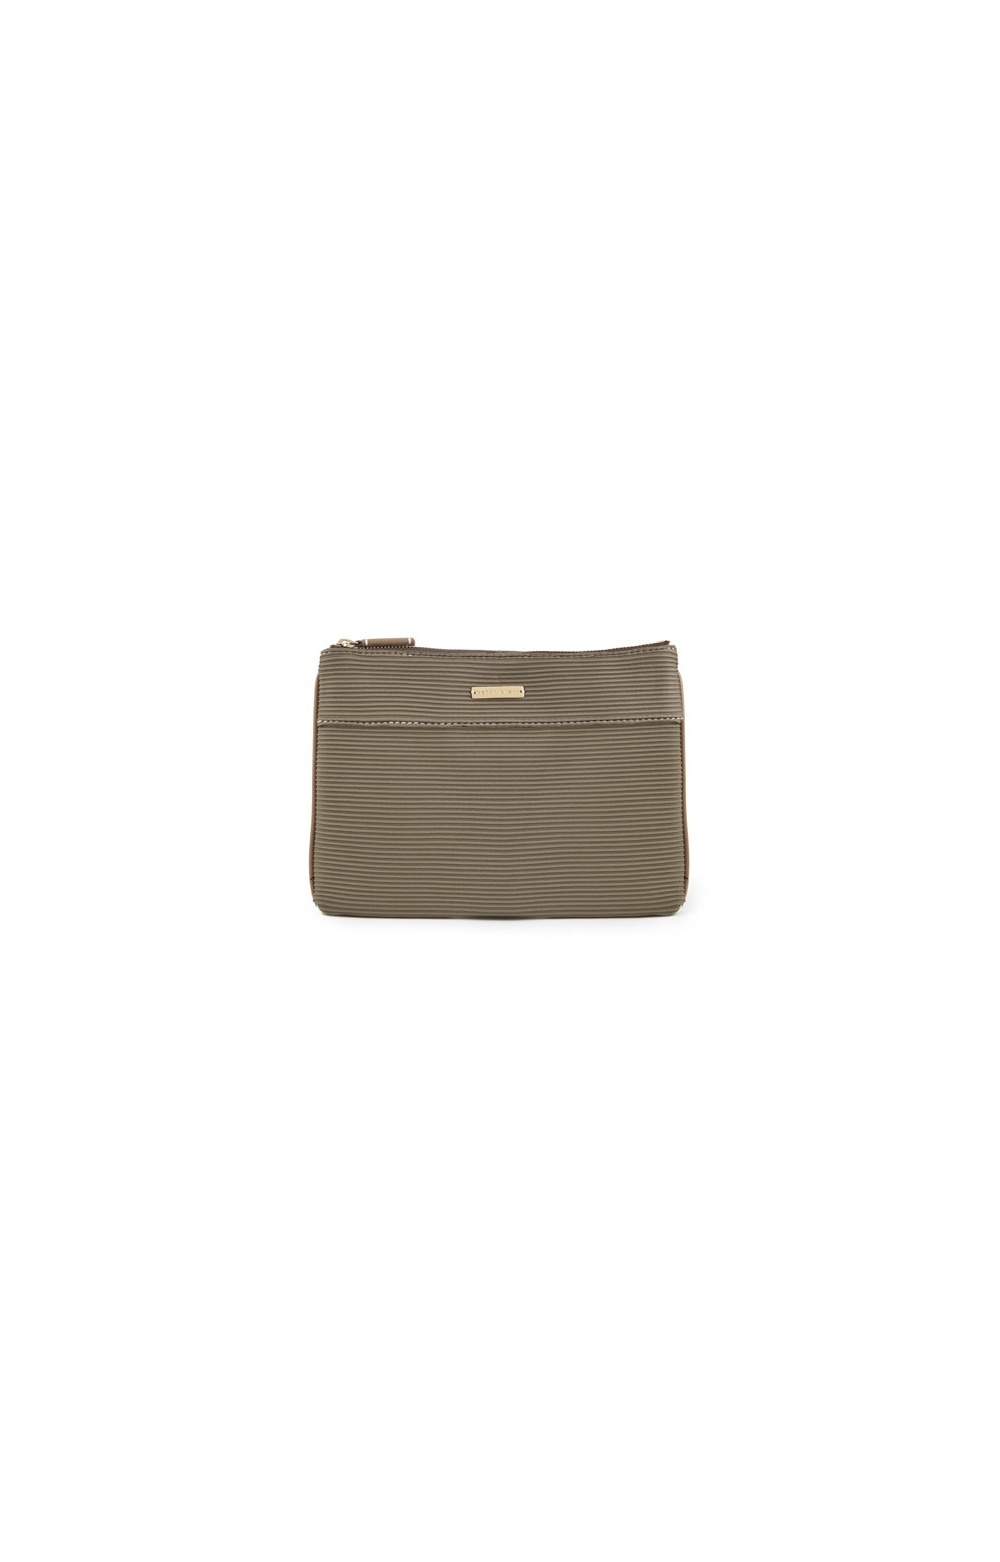 Green Mystique Flat Beauty Pouch In Olive - predominant colour: taupe; type of pattern: standard; style: clutch; length: hand carry; size: small; material: fabric; pattern: plain; finish: plain; occasions: creative work; season: s/s 2016; wardrobe: investment